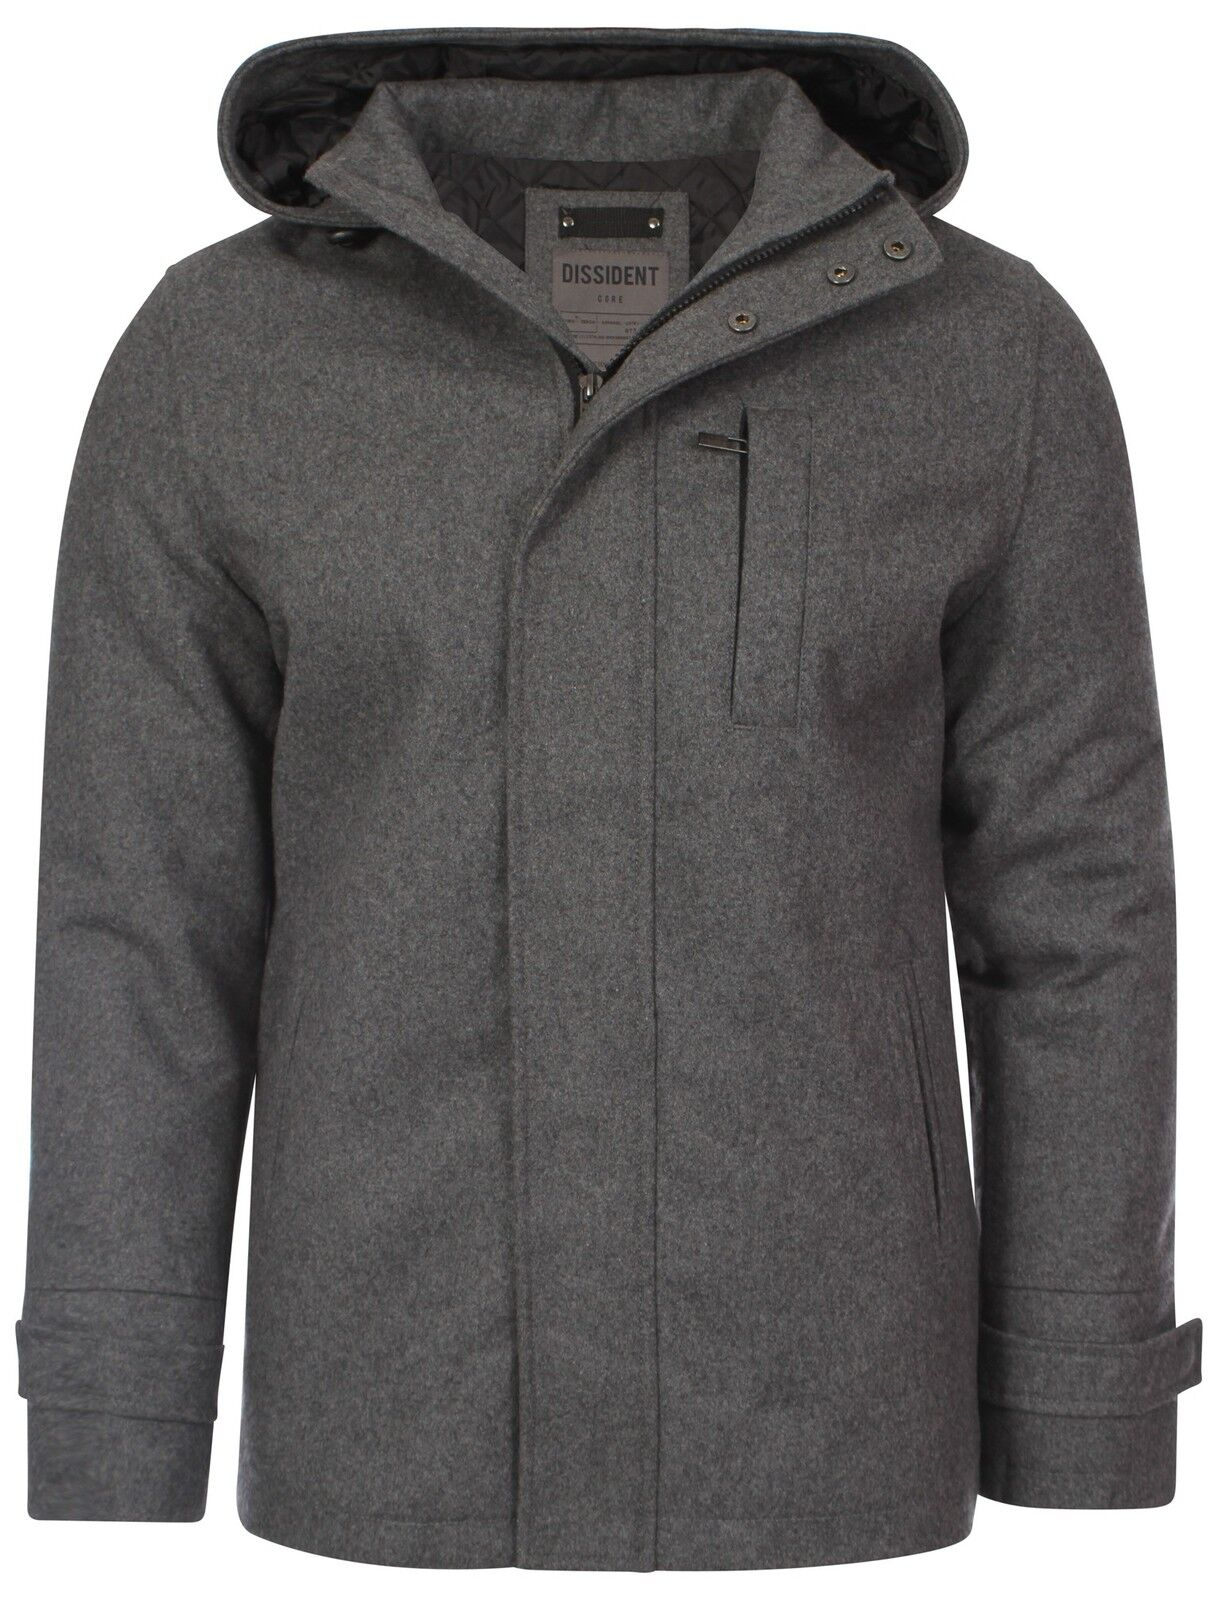 Wool Blend Zip Jacket